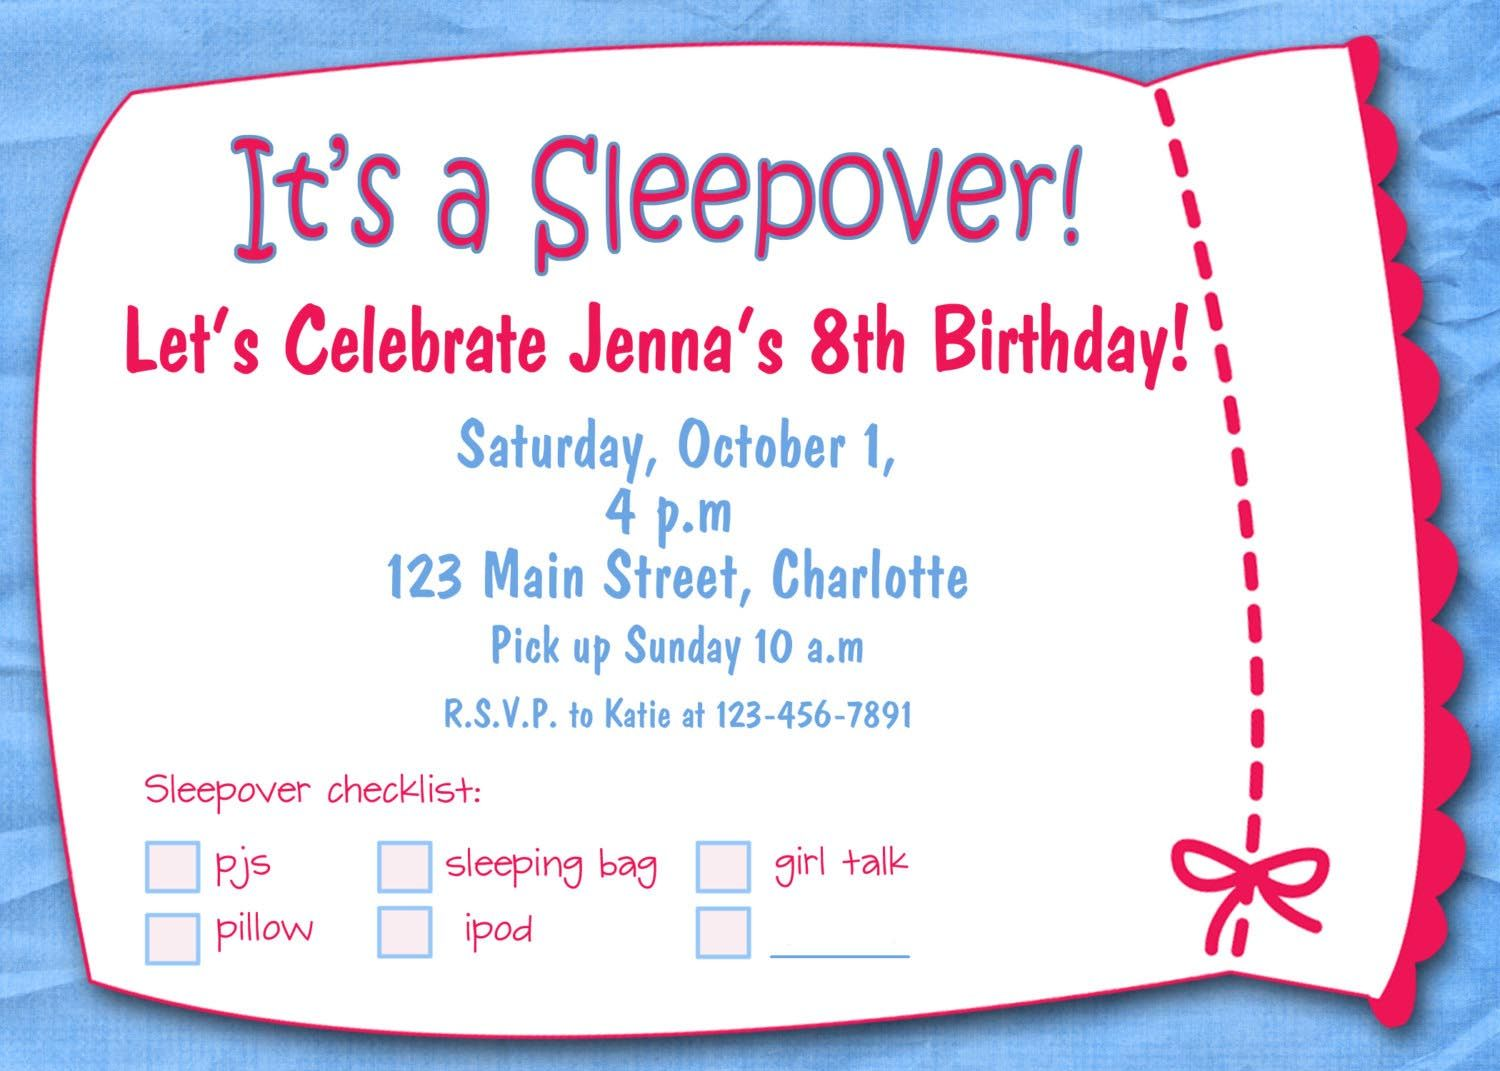 Pajama Party Invitations free Printable | Pajama Party | Pinterest ...